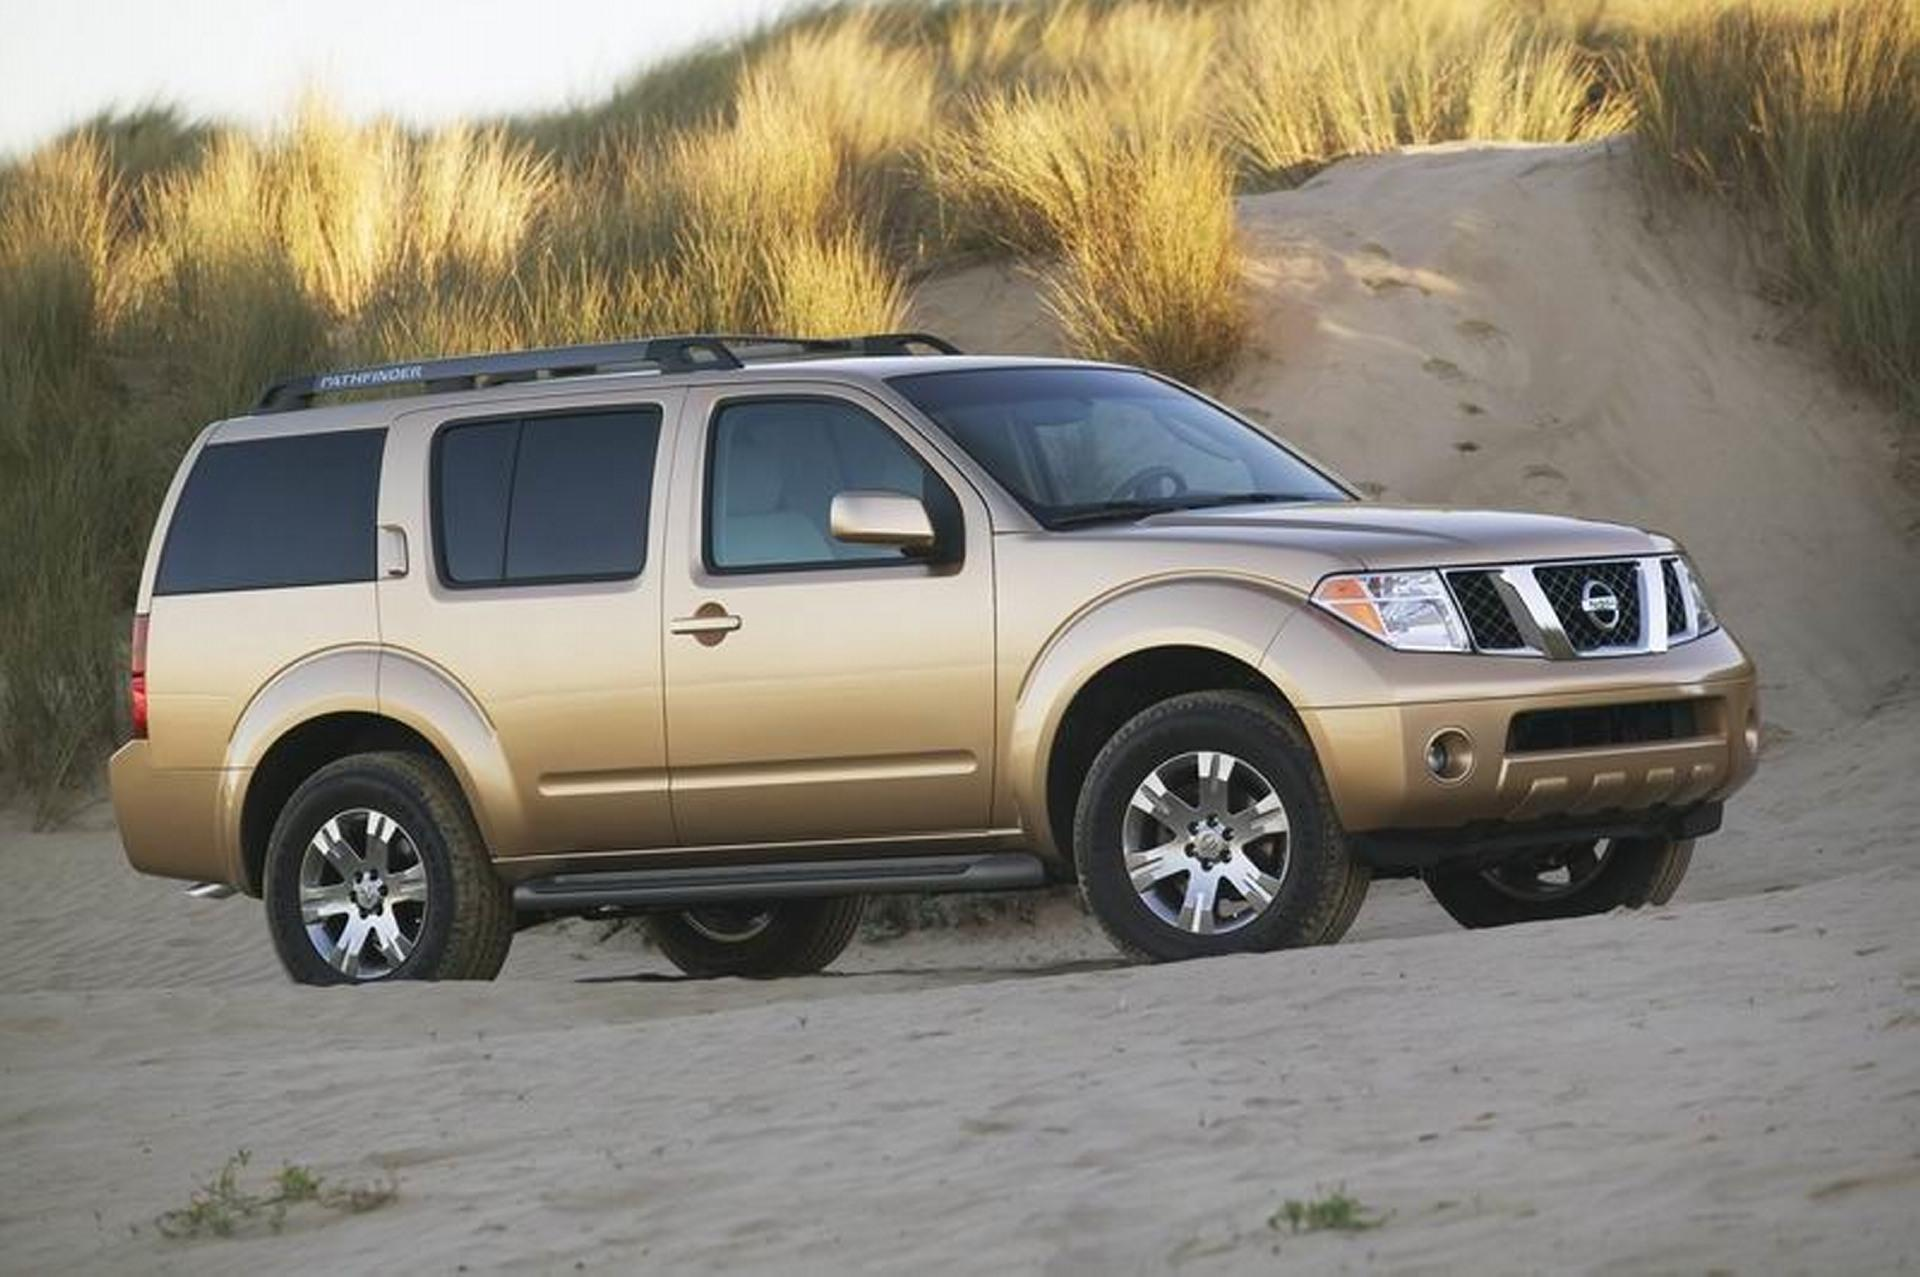 2007 nissan pathfinder pictures history value research news. Black Bedroom Furniture Sets. Home Design Ideas